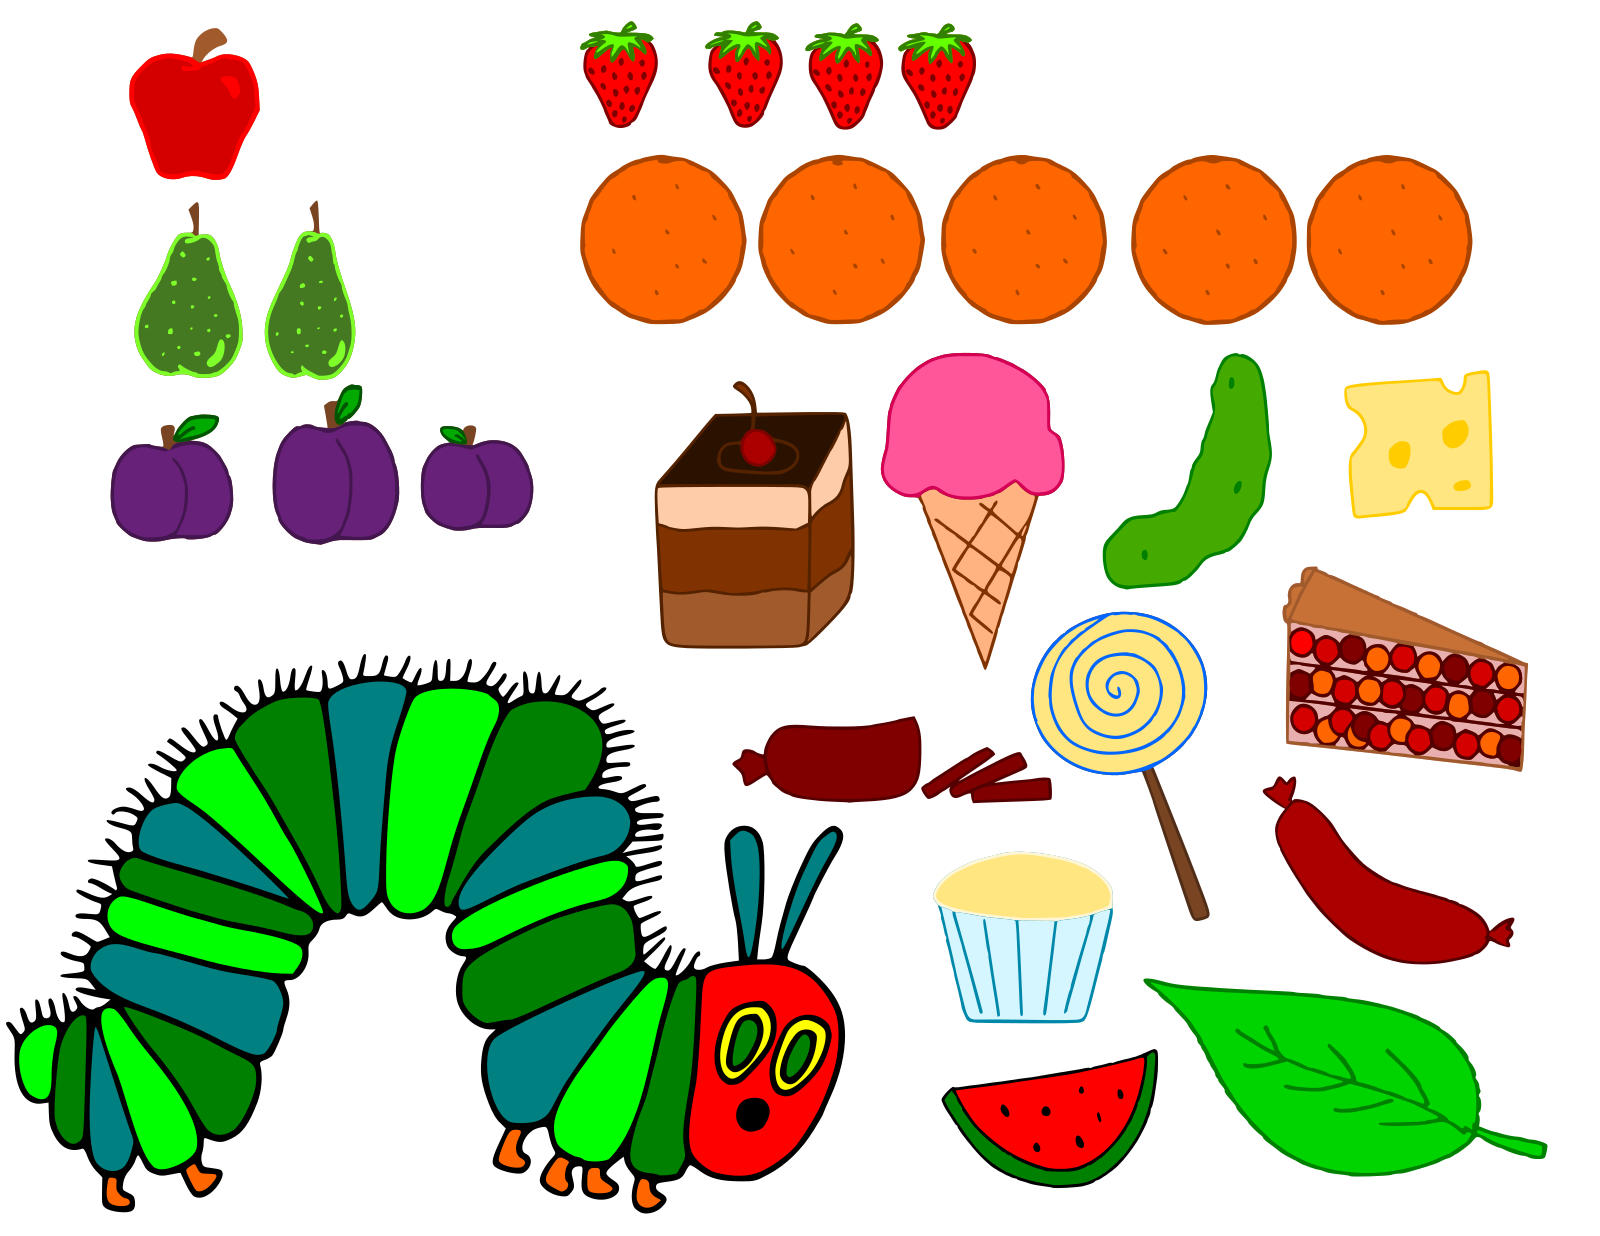 HUNGRY+CATERPILLAR 17 files uoloaded | Free SVG Files | Krafty nook